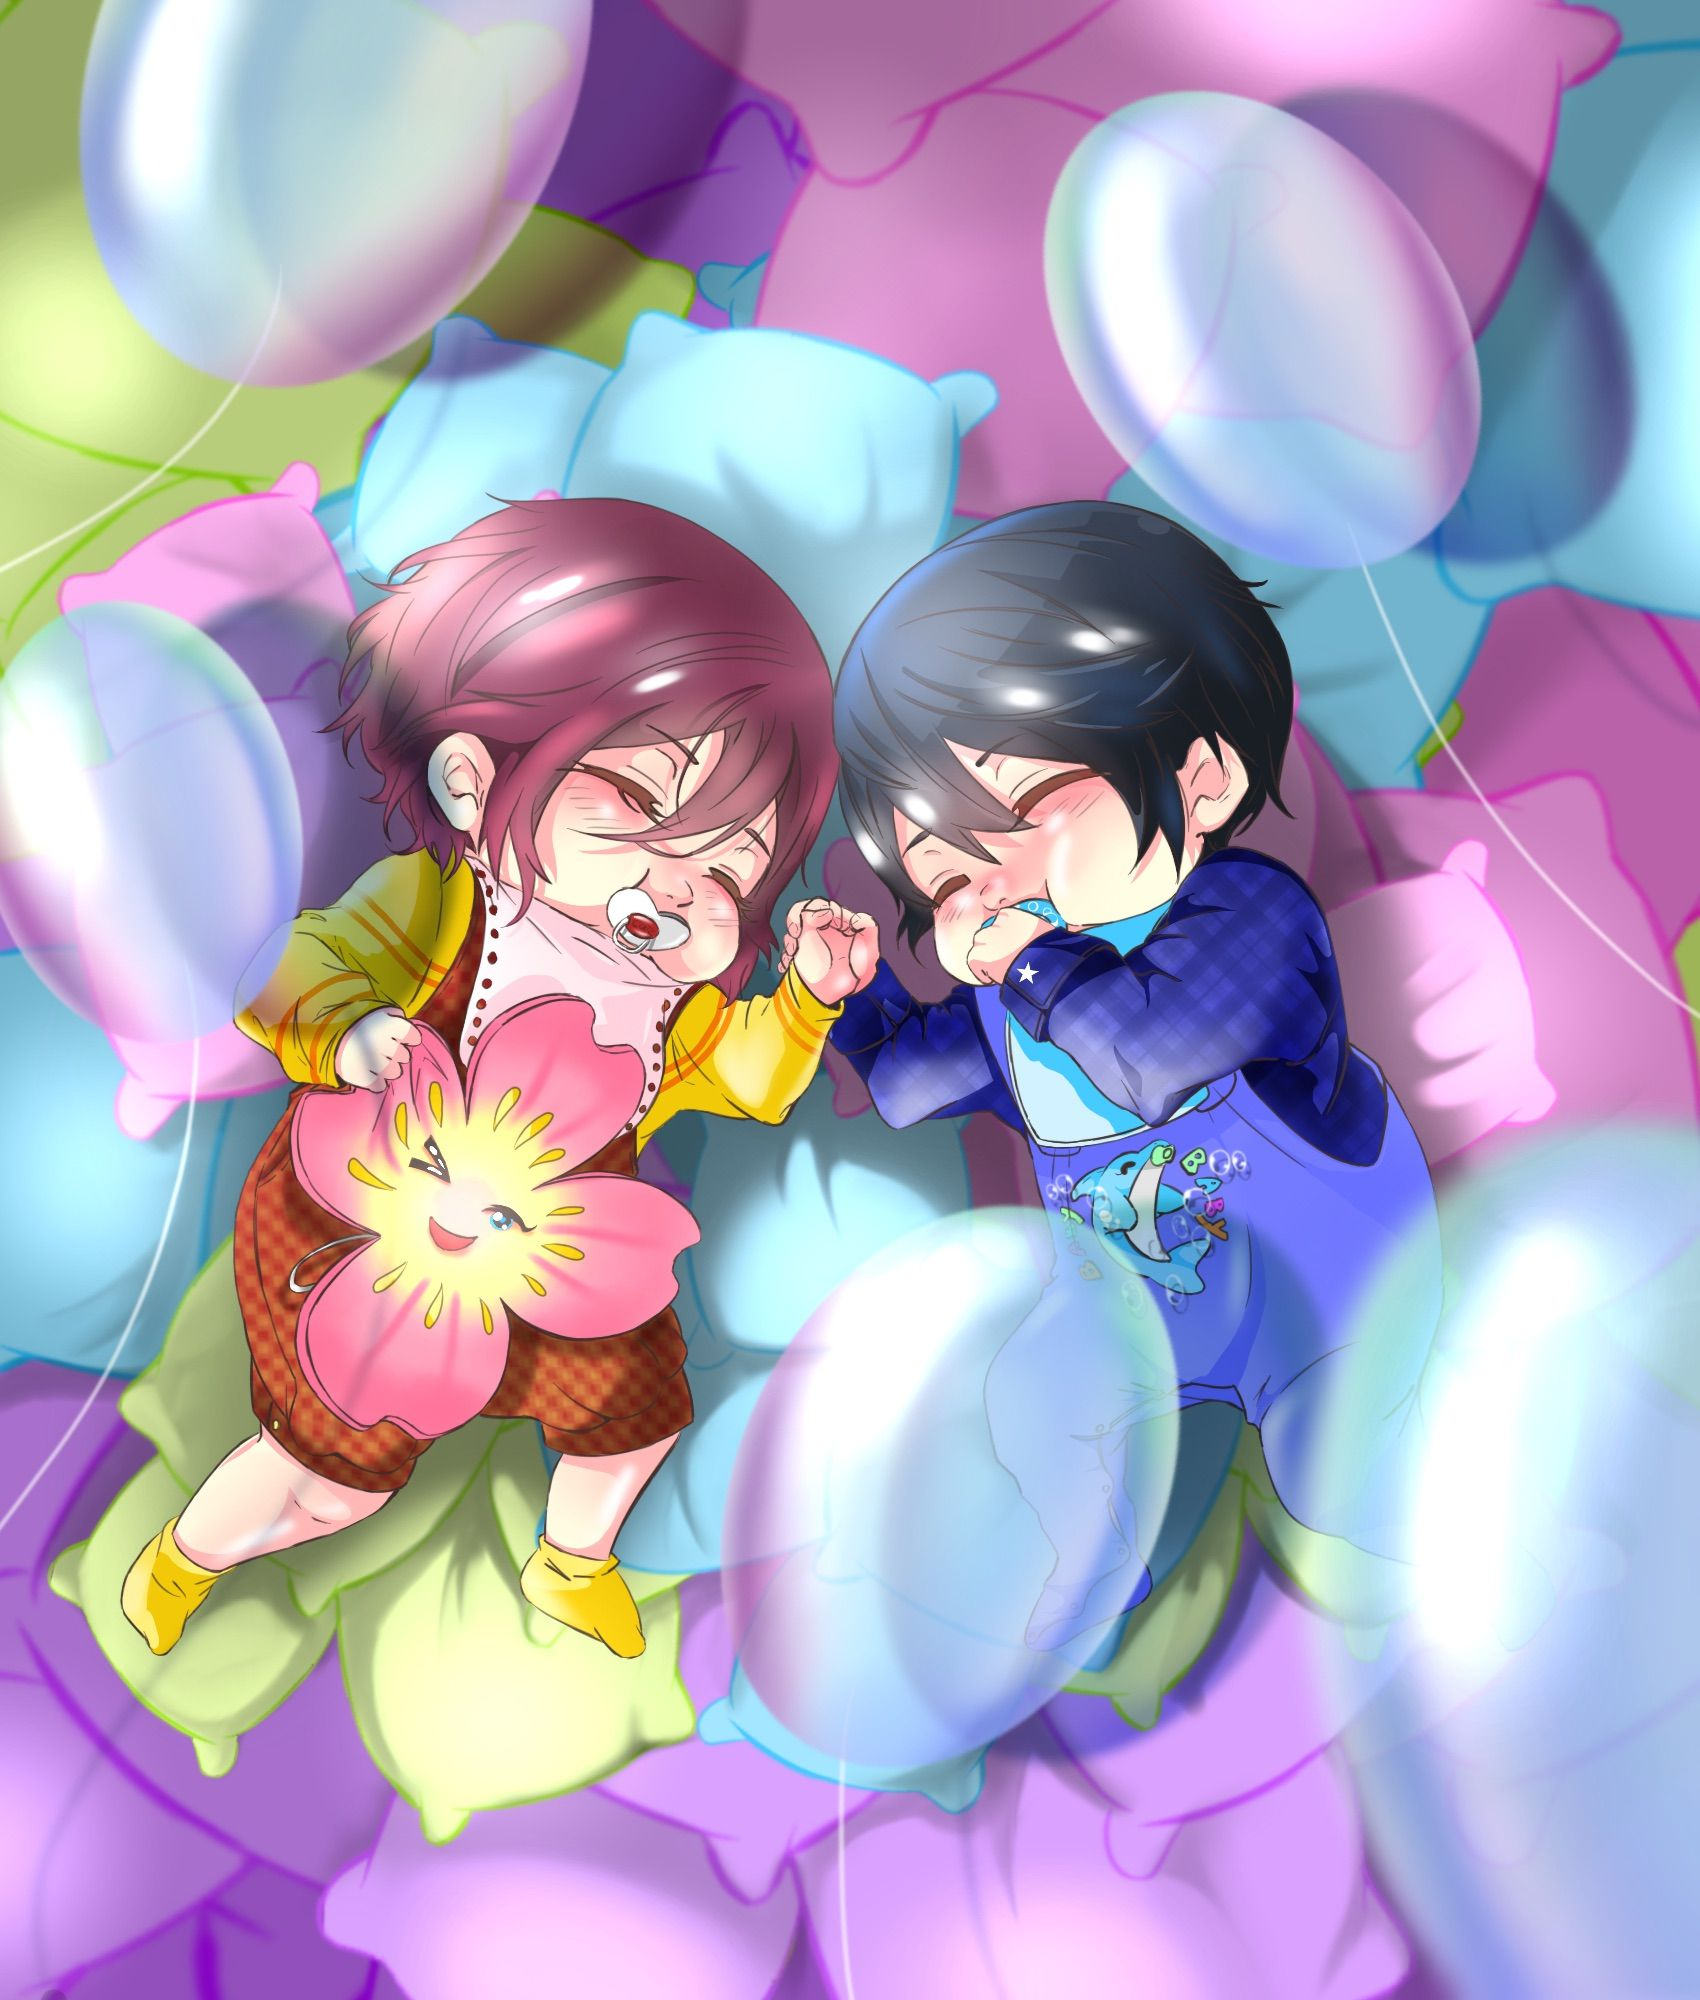 Sweet Dream Anime Sweet Dreams Baby Anime Boy Some content is for members only, please sign up to see all content. pinterest